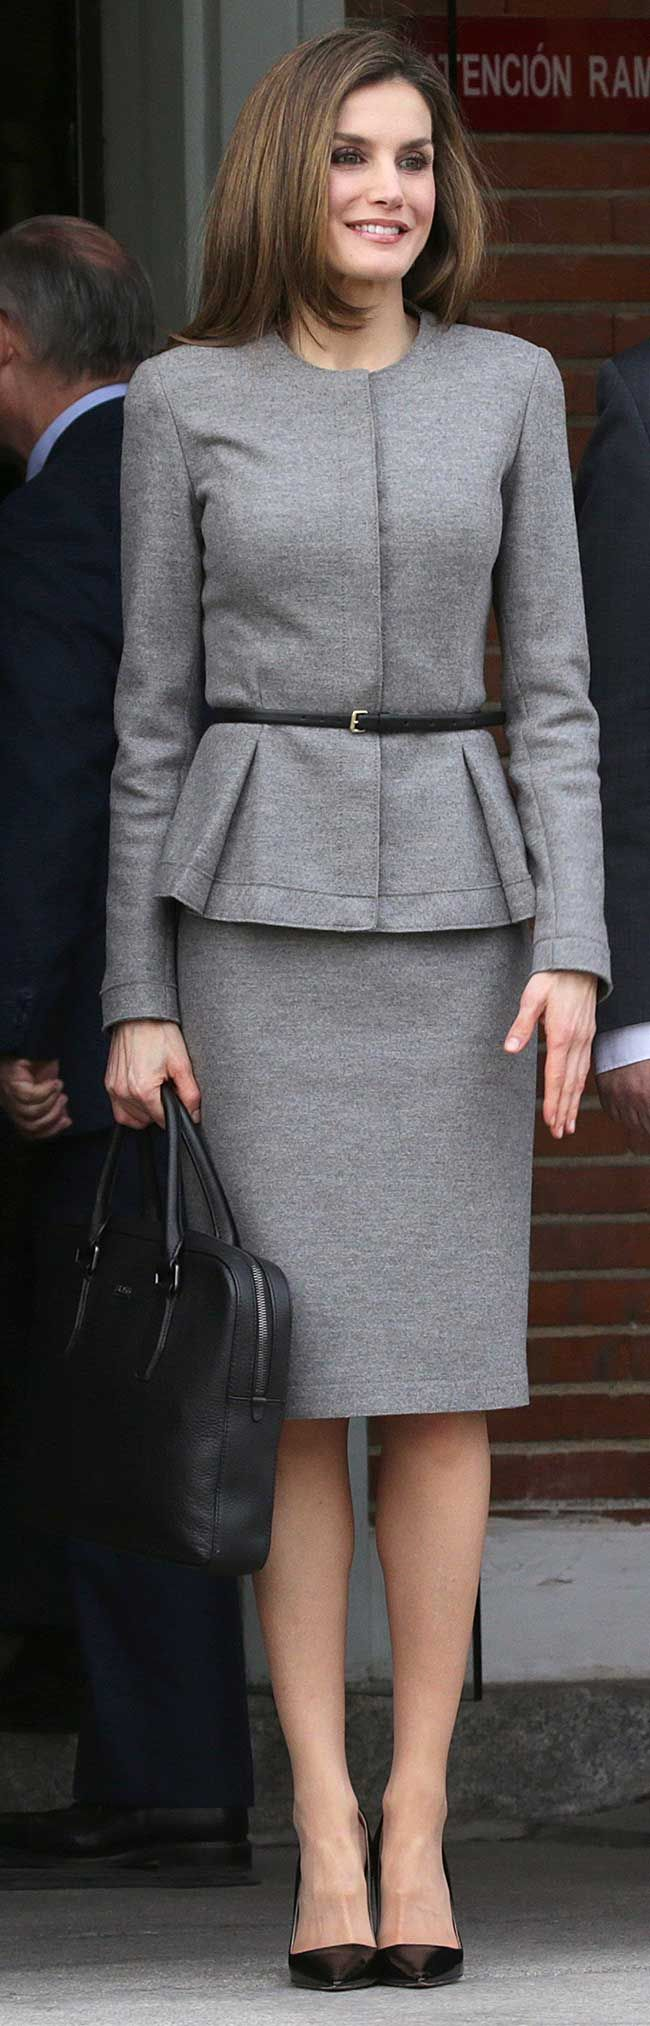 Queen Letizia of Spain attended a working meeting of the Spanish Agency for International Cooperation for Development (AECID) at AECID headquarters on March 7, 2017 in Madrid.